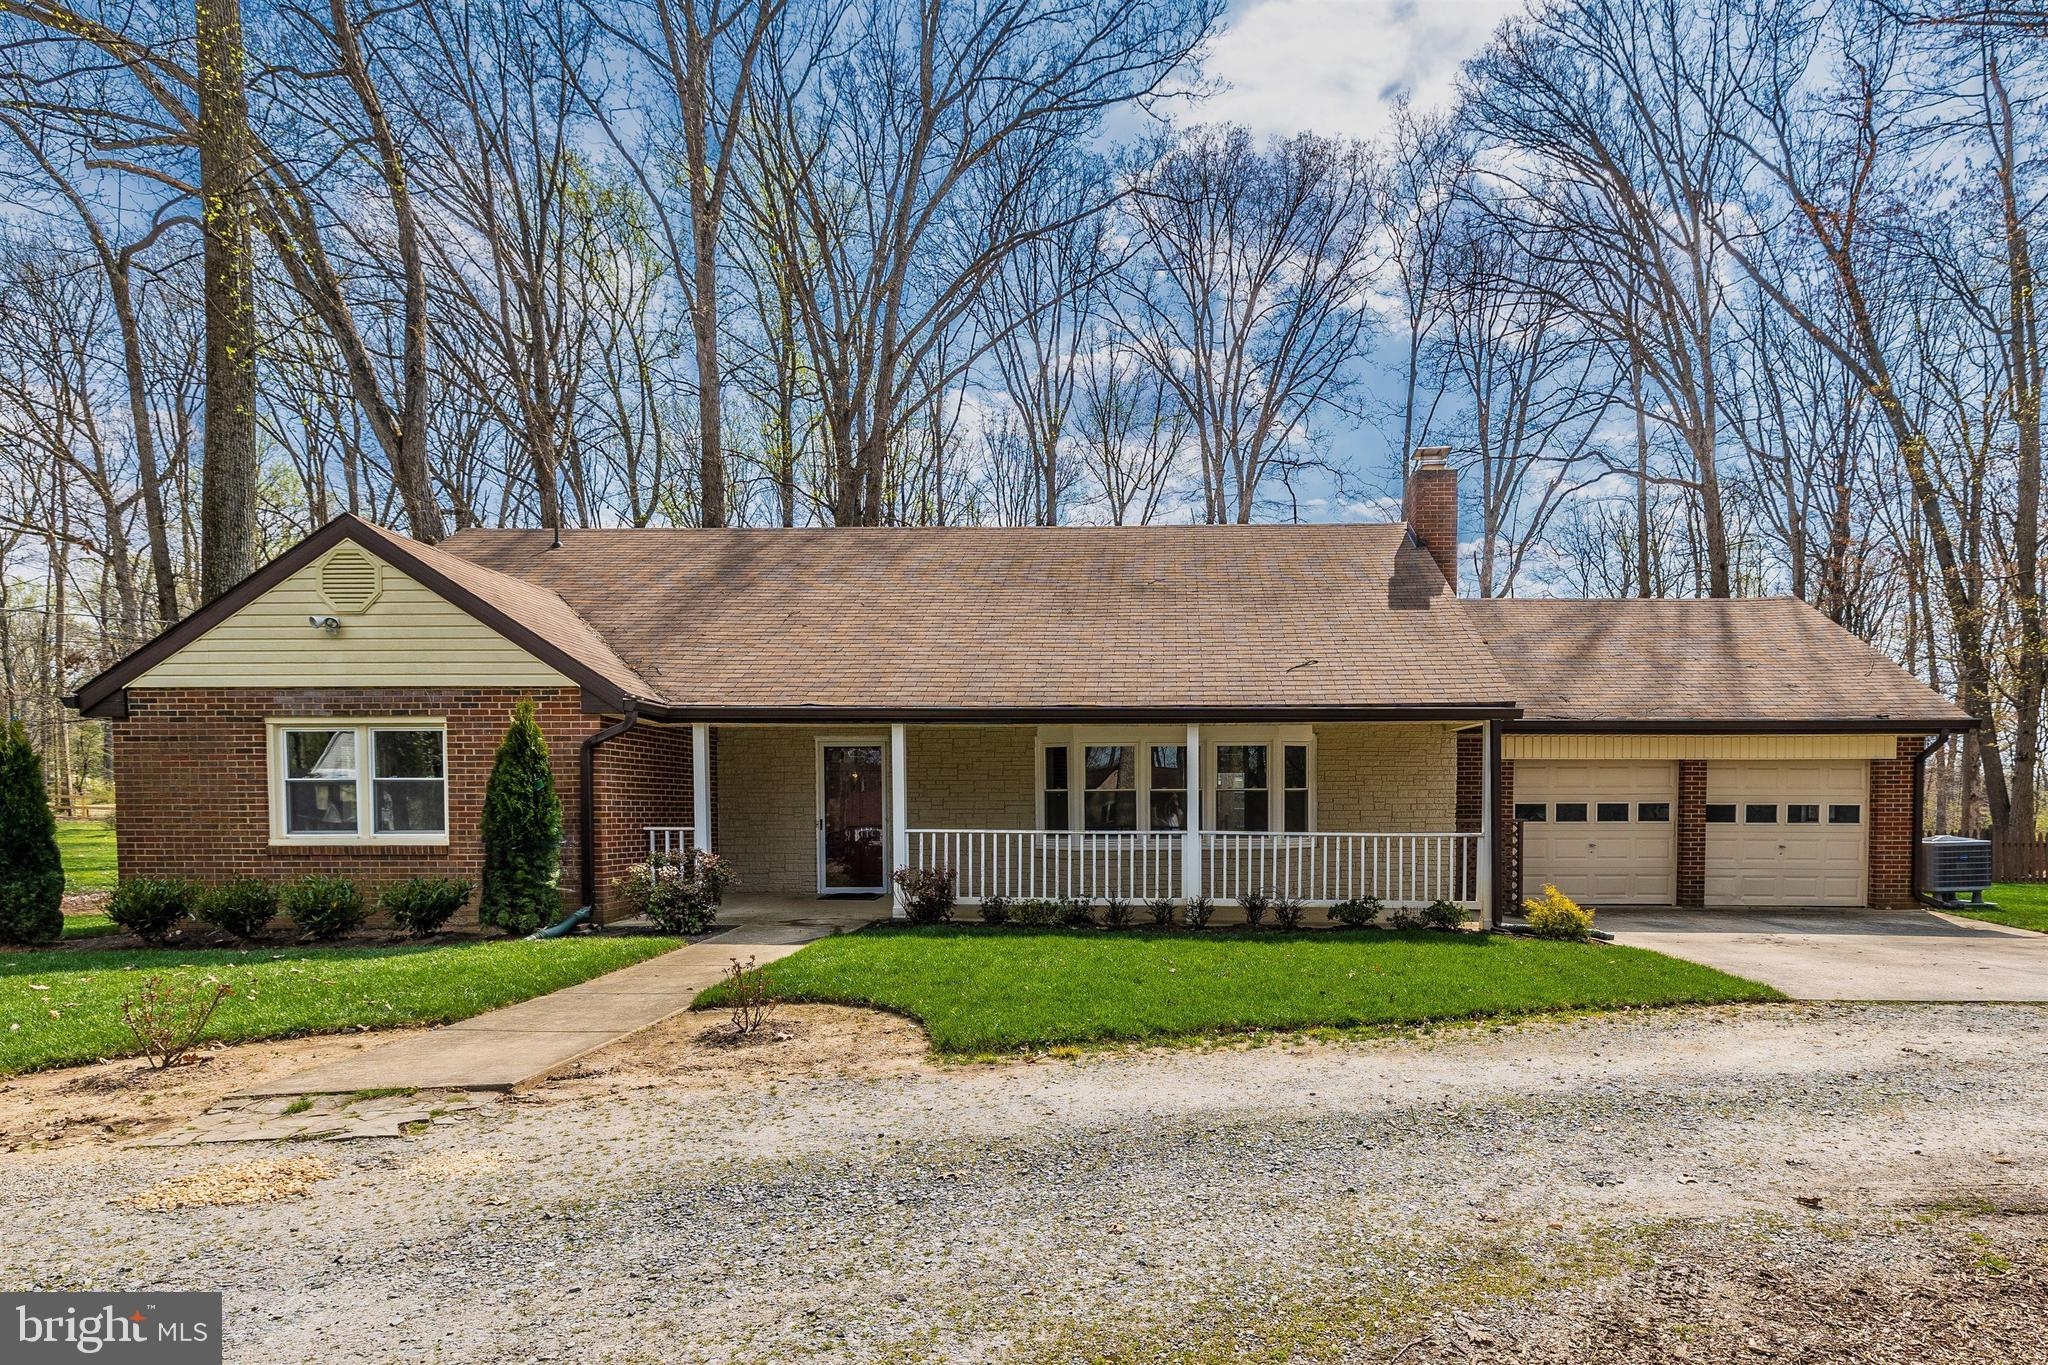 4400 Pinetree Rd, Rockville, MD, 20853